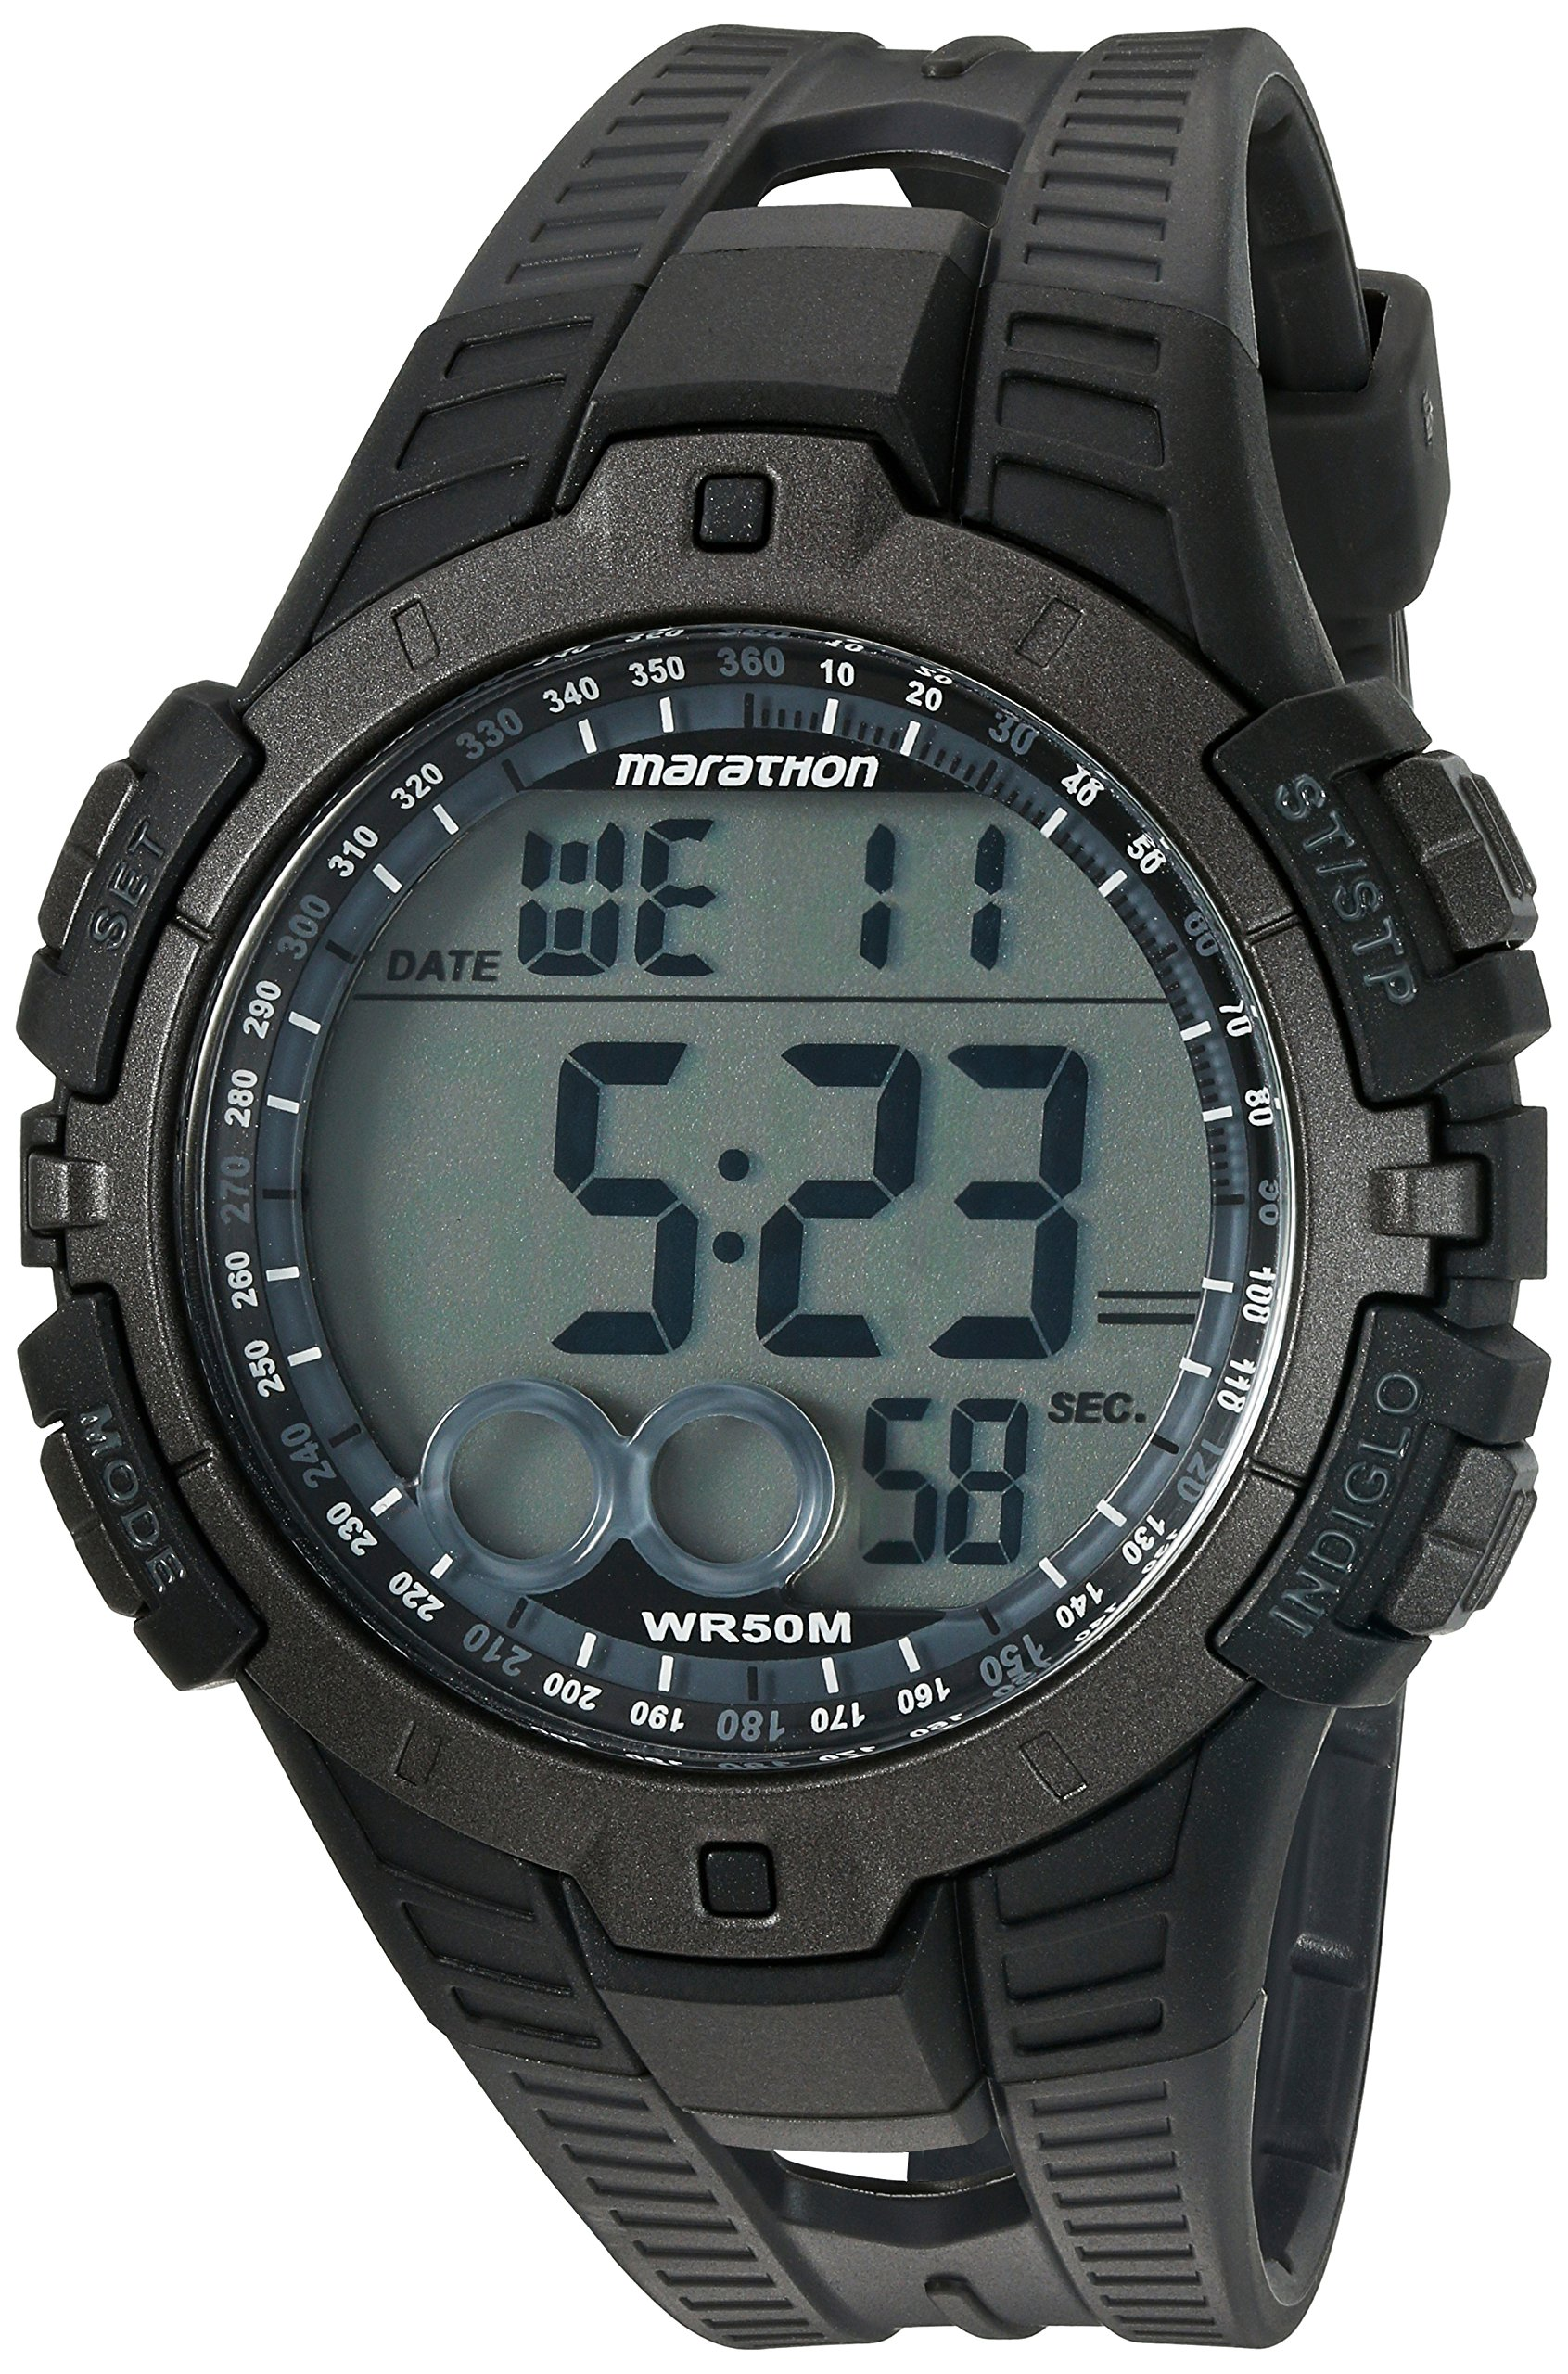 Marathon by Timex Men's T5K802 Digital Full-Size Black/Gray Resin Strap Watch by Timex